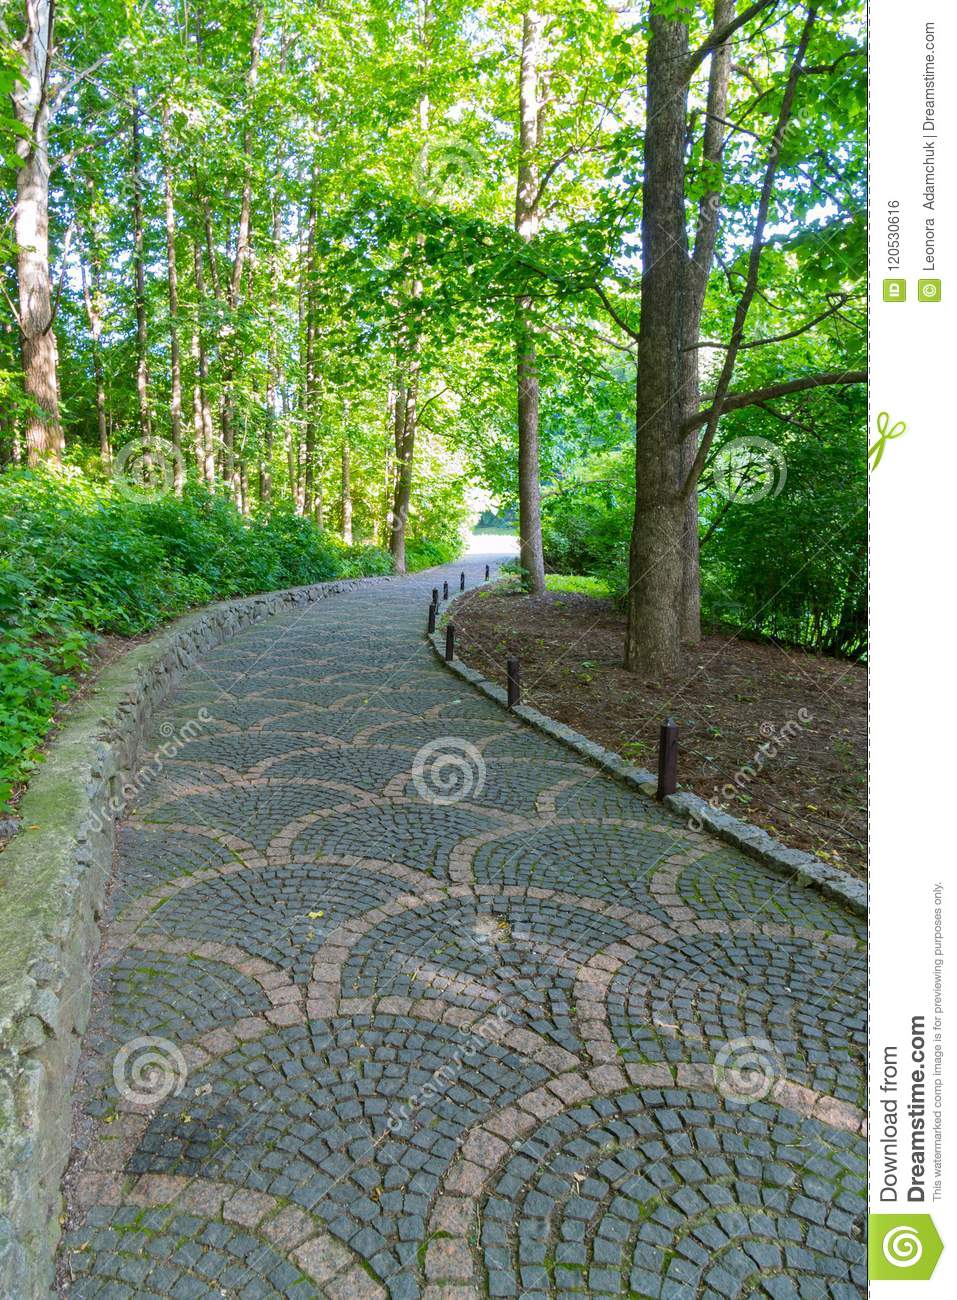 The path in the park is paved with a beautiful pattern running between green trees and low lush bushes.